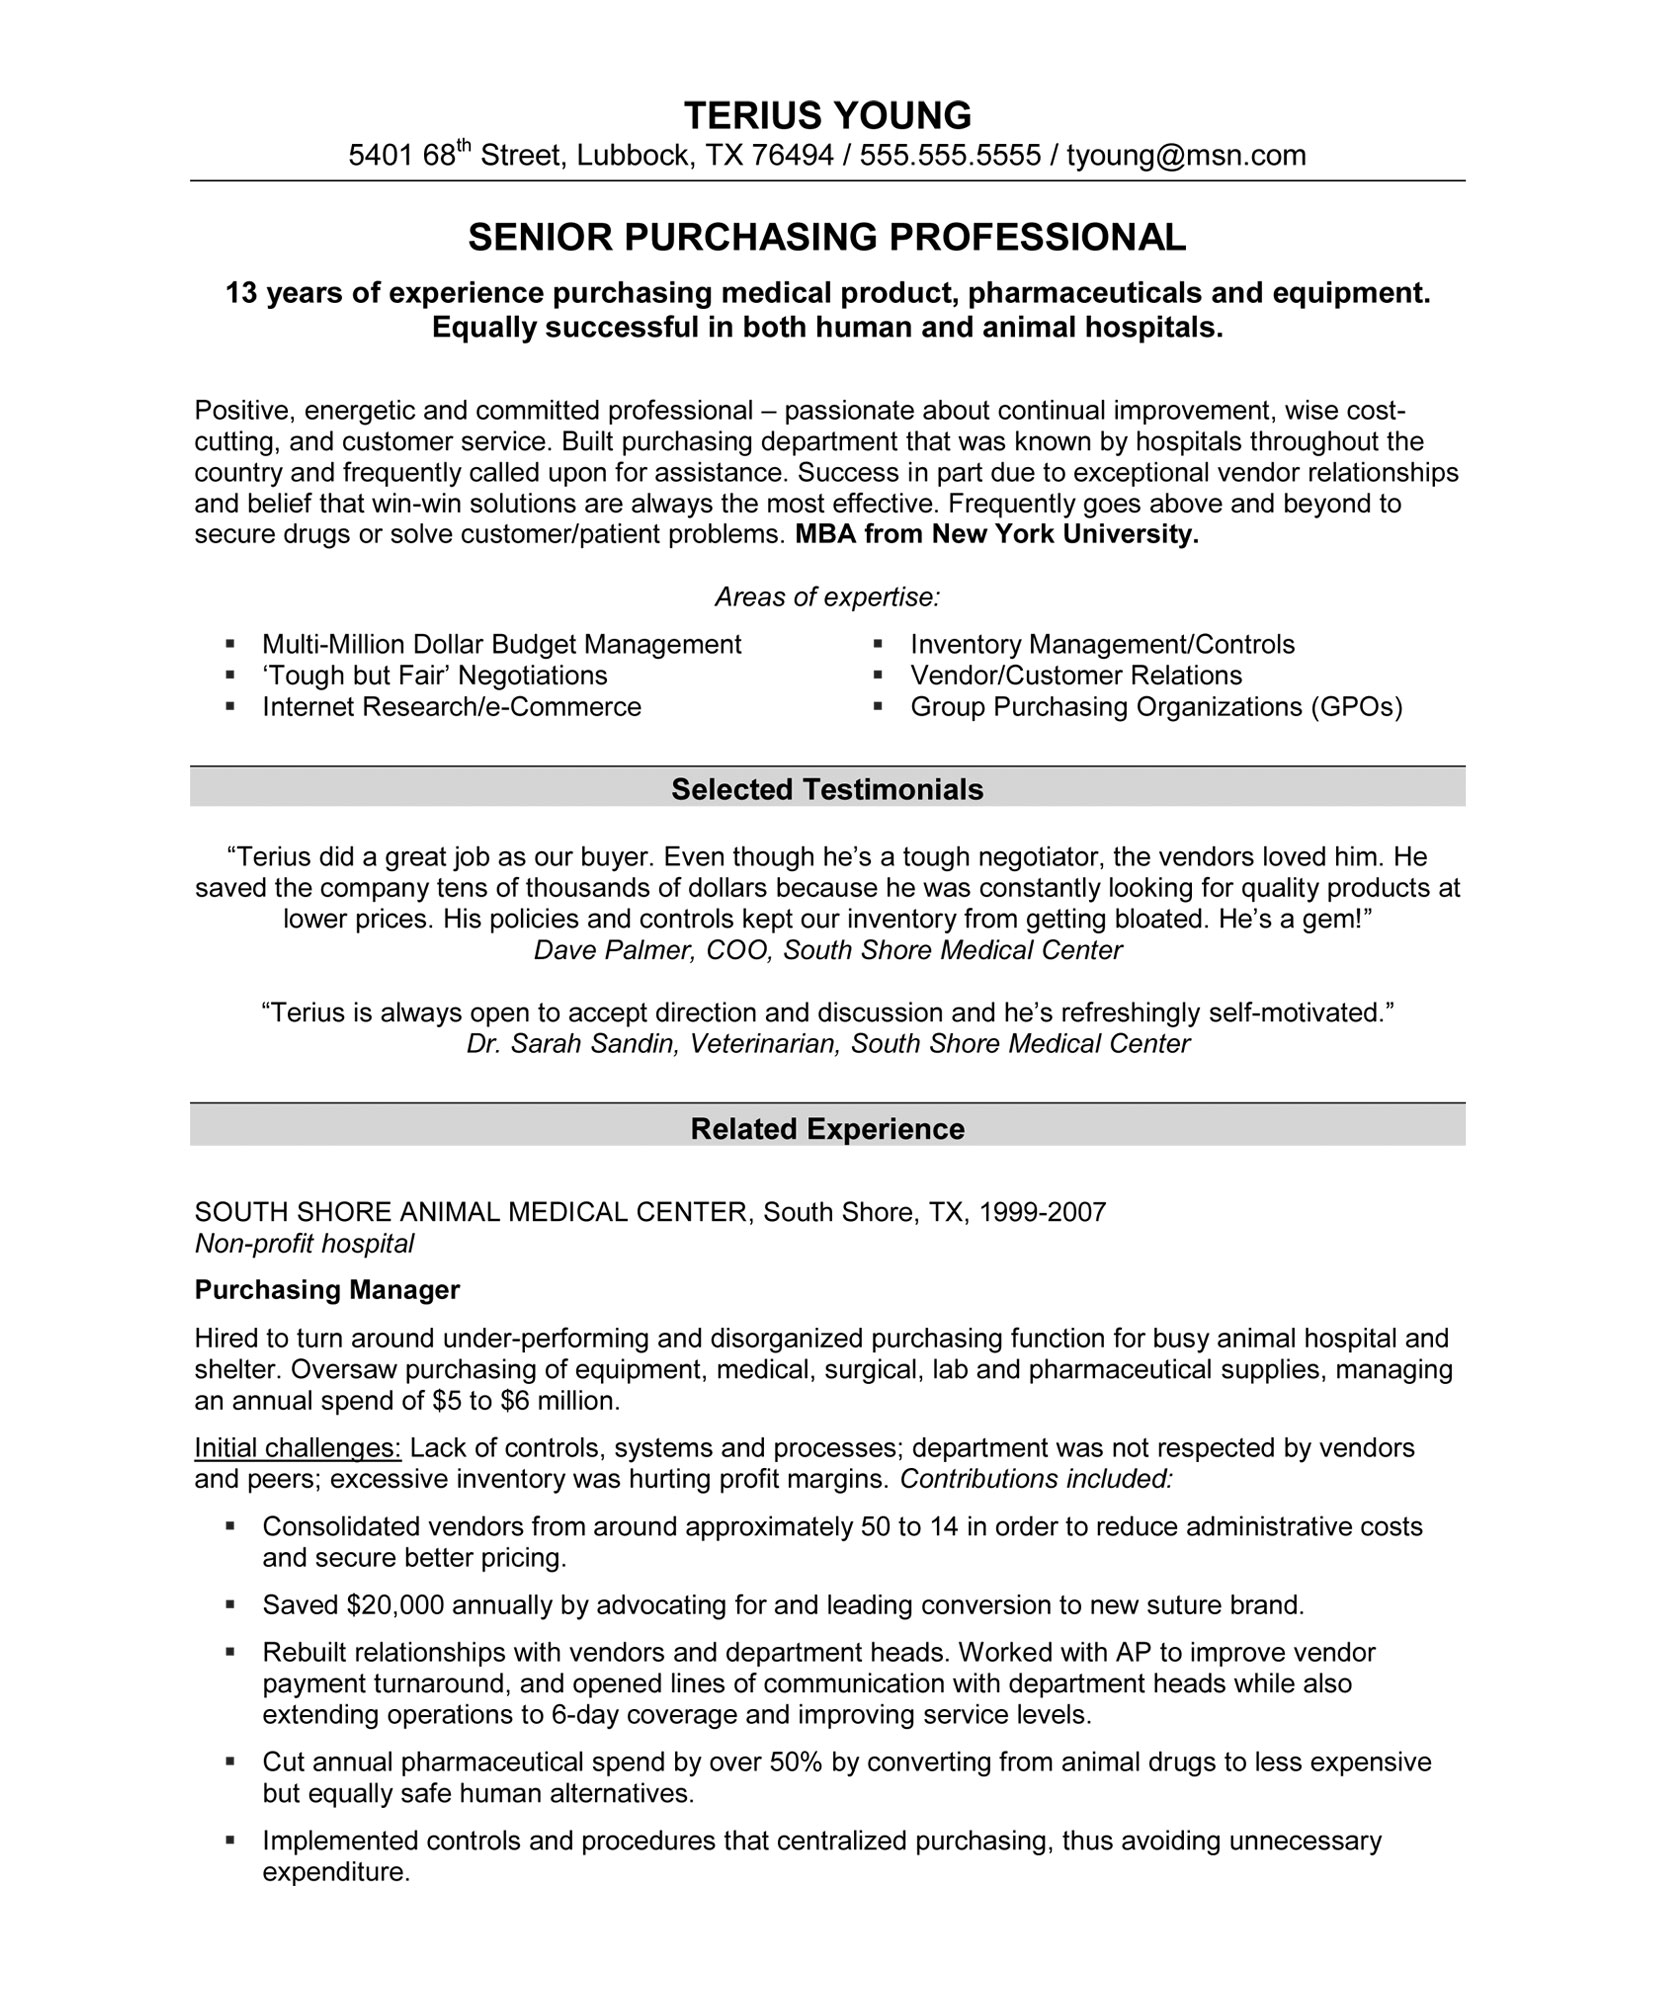 Revised Resume How To Make Over Your Resume Real World Example 2 Blue